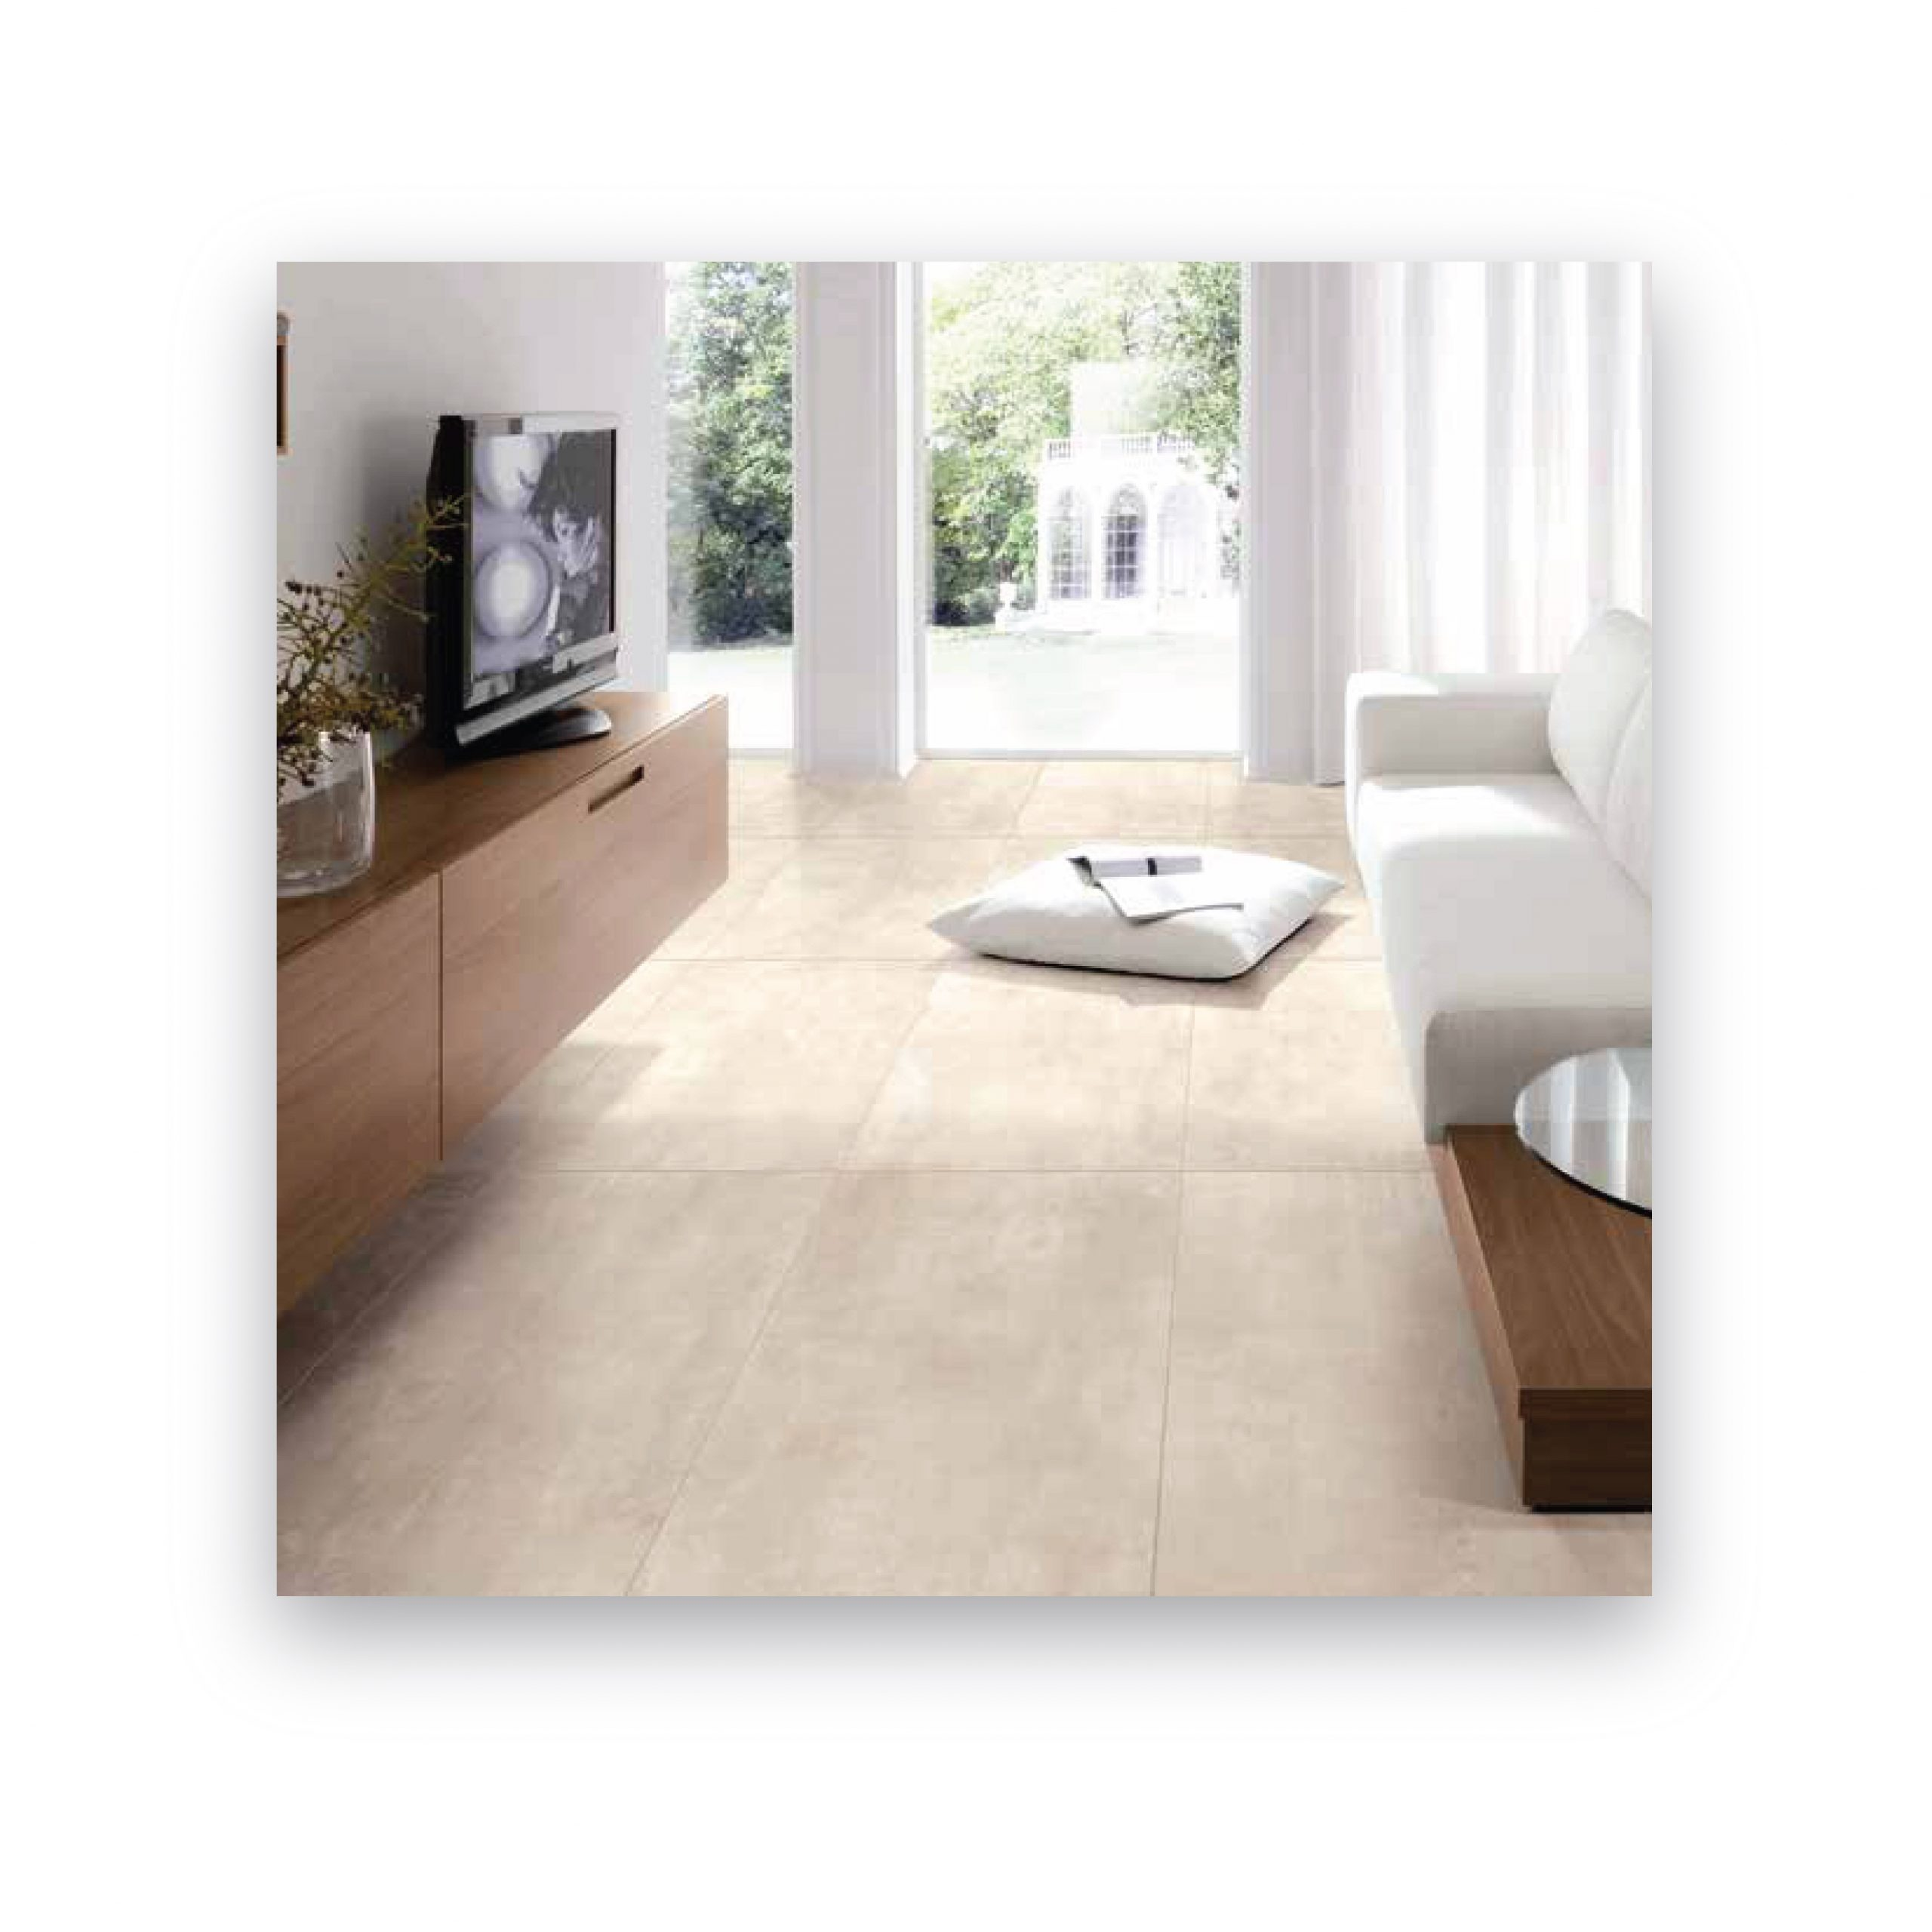 All Natural Stone Stock Material, All Natural Stone Stock Porcelain, Viale